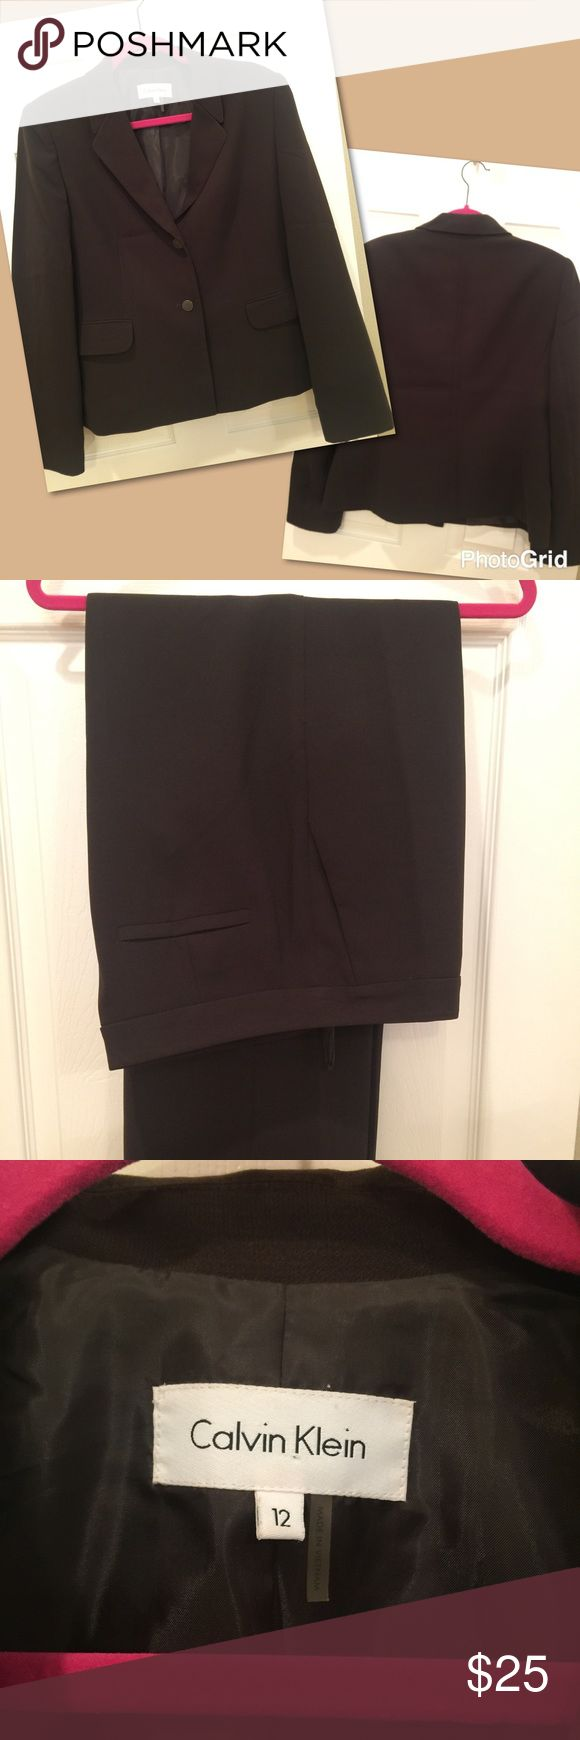 Calvin Klein Brown Ladies Business Suit Size 12 Calvin Klein ladies business suit, fully lined,  in great condition (worn less than 5 times). Calvin Klein Other